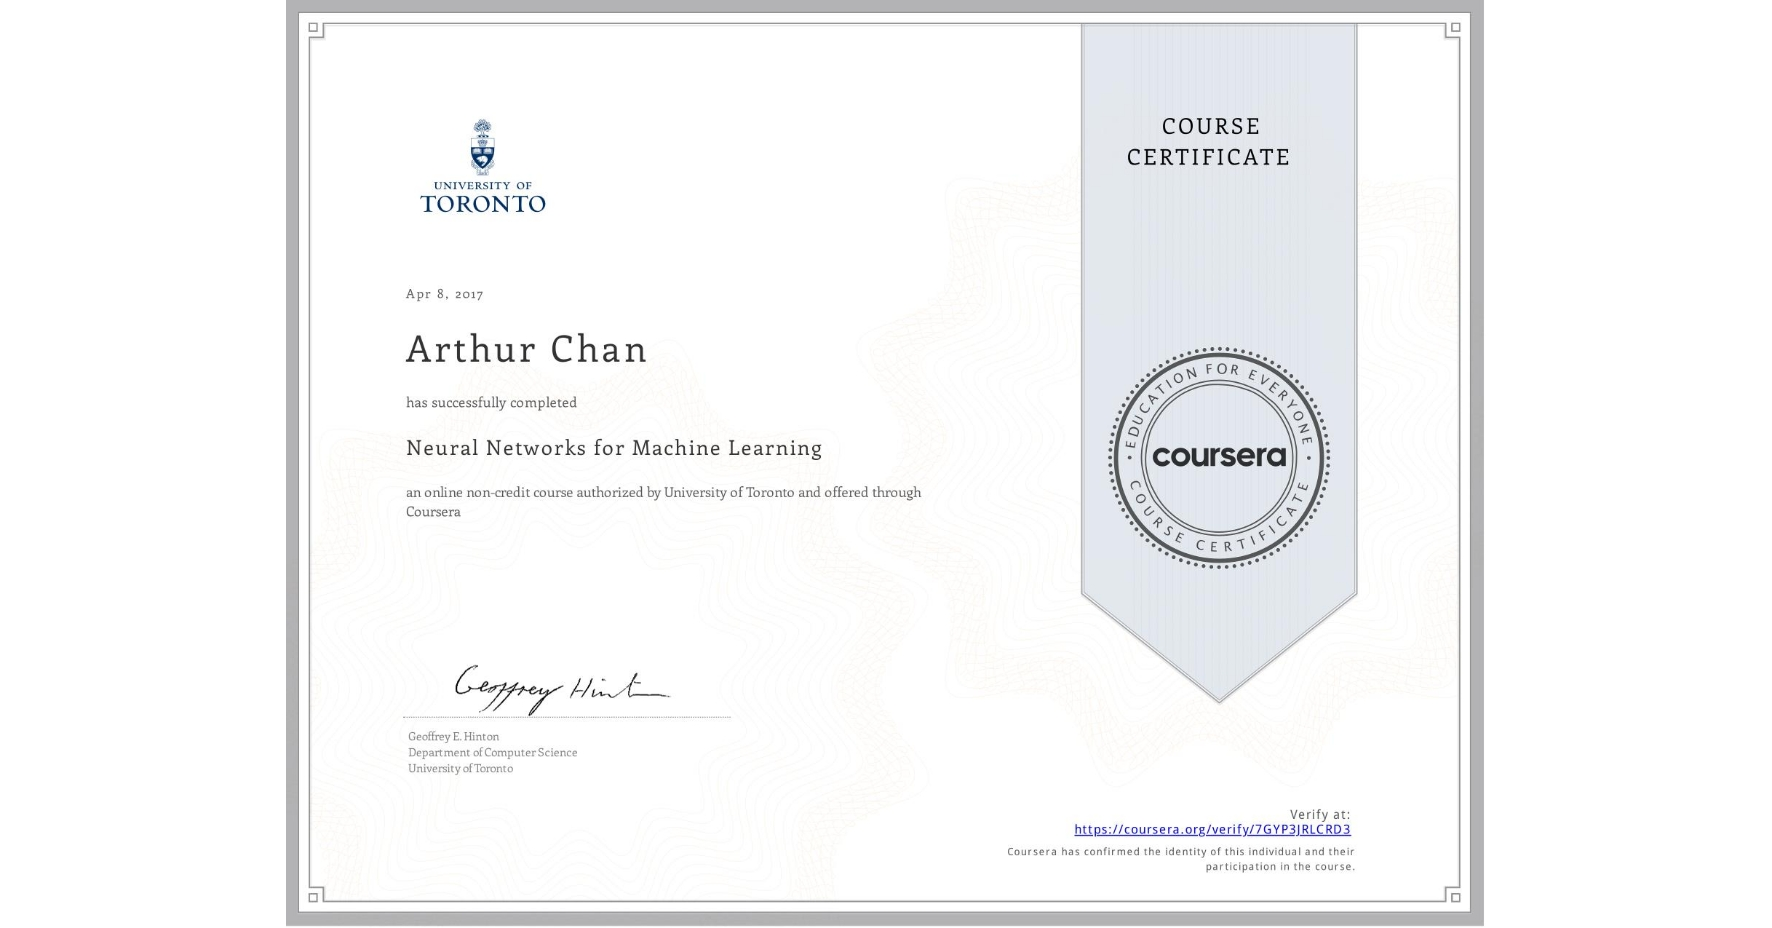 View certificate for Arthur Chan, Neural Networks for Machine Learning, an online non-credit course authorized by University of Toronto and offered through Coursera